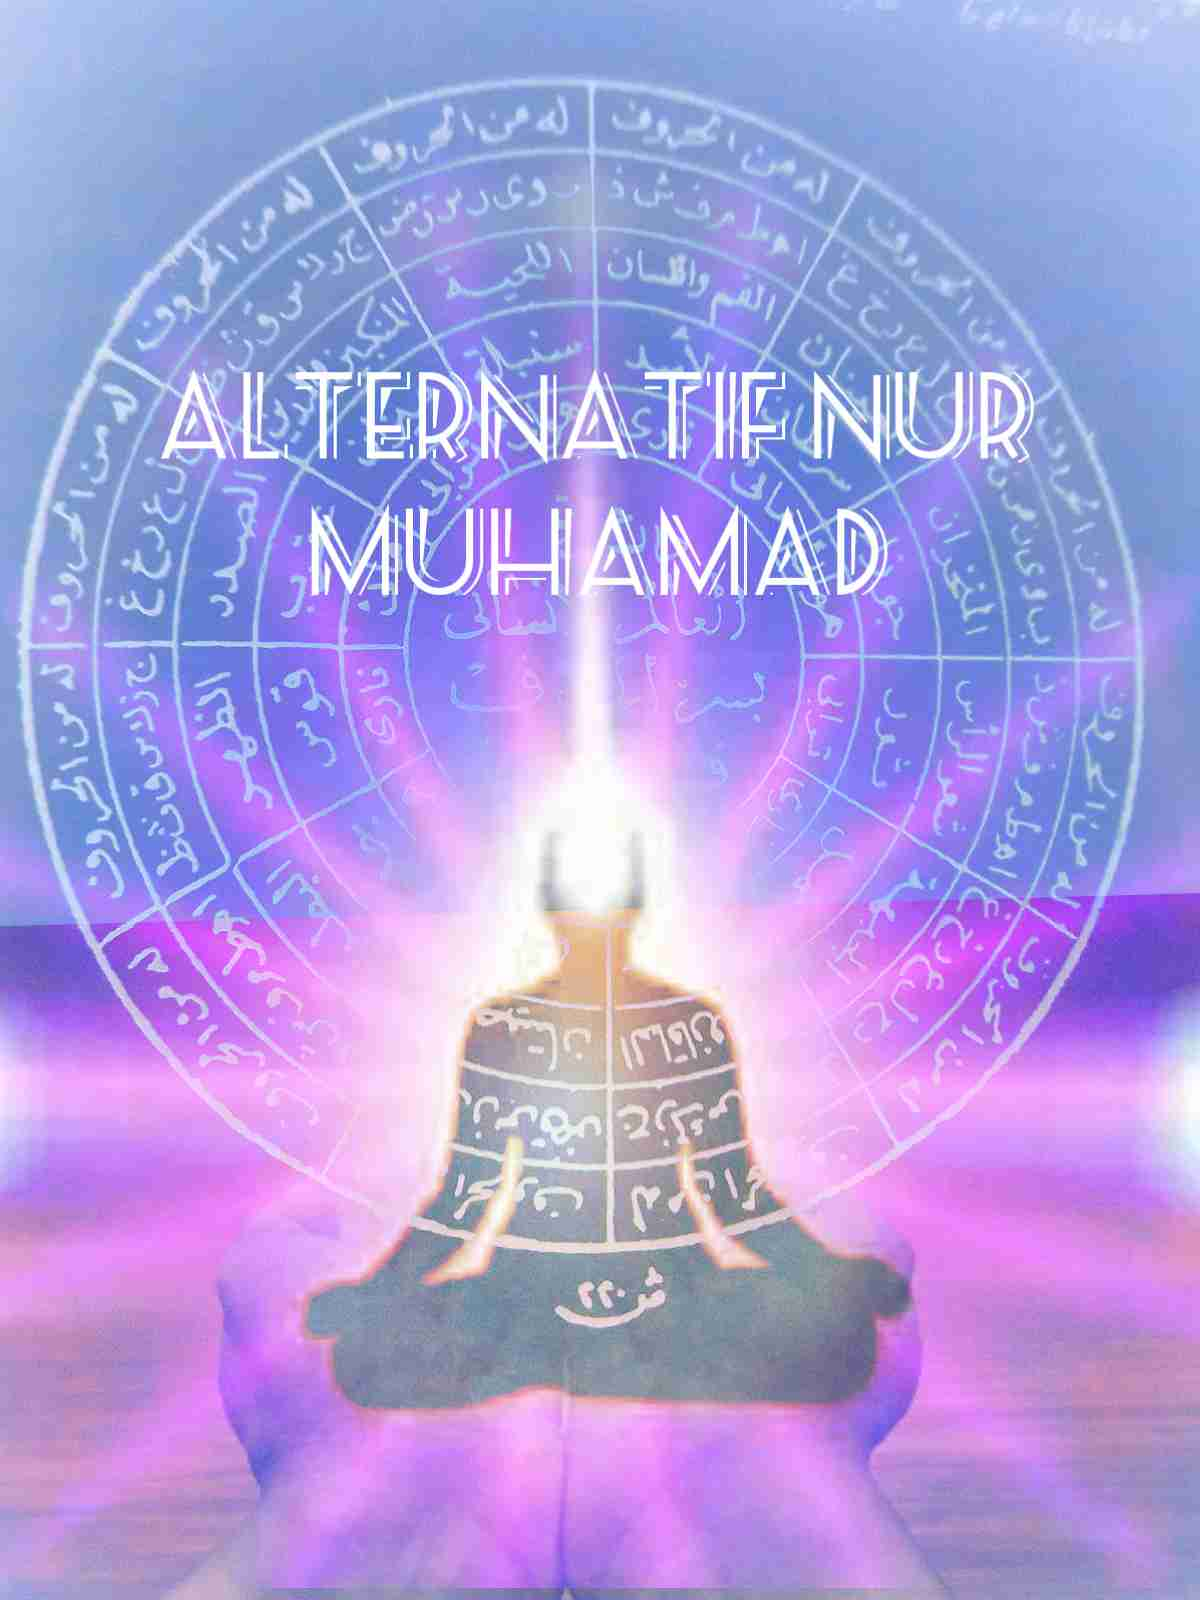 Alternatif nur muhamad